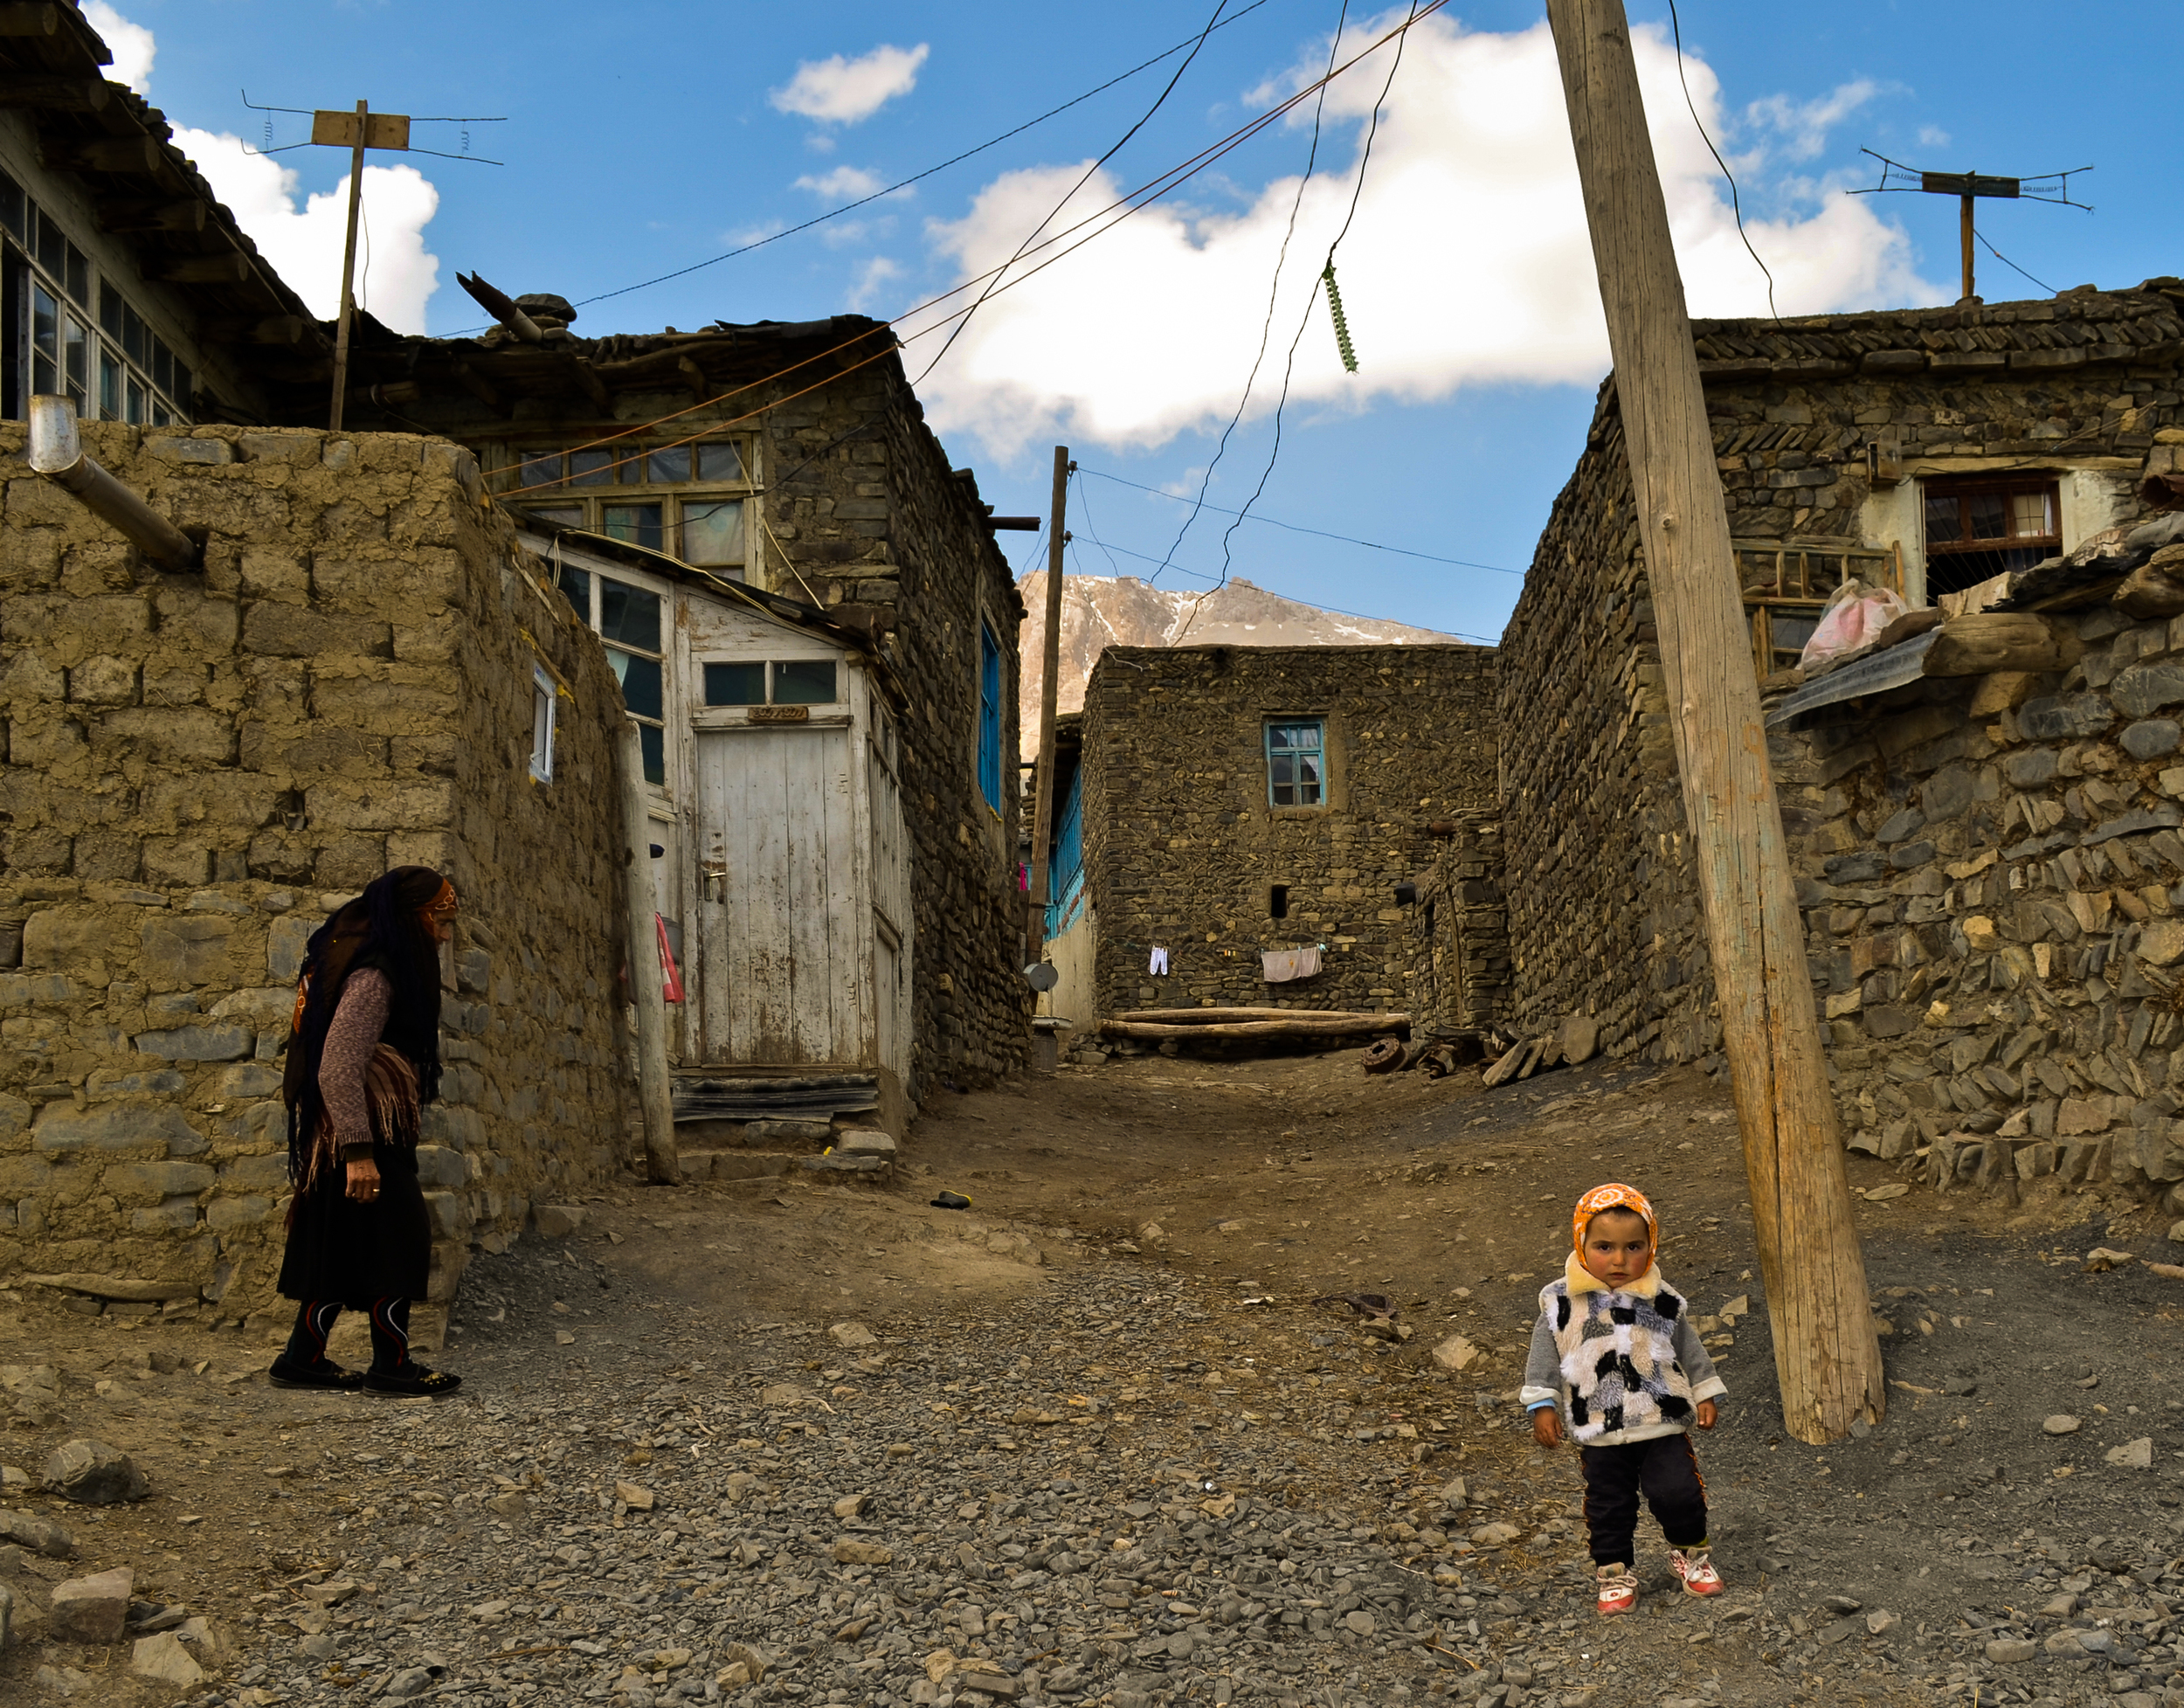 Elderly woman and child in Xinaliq, Azerbaijan.